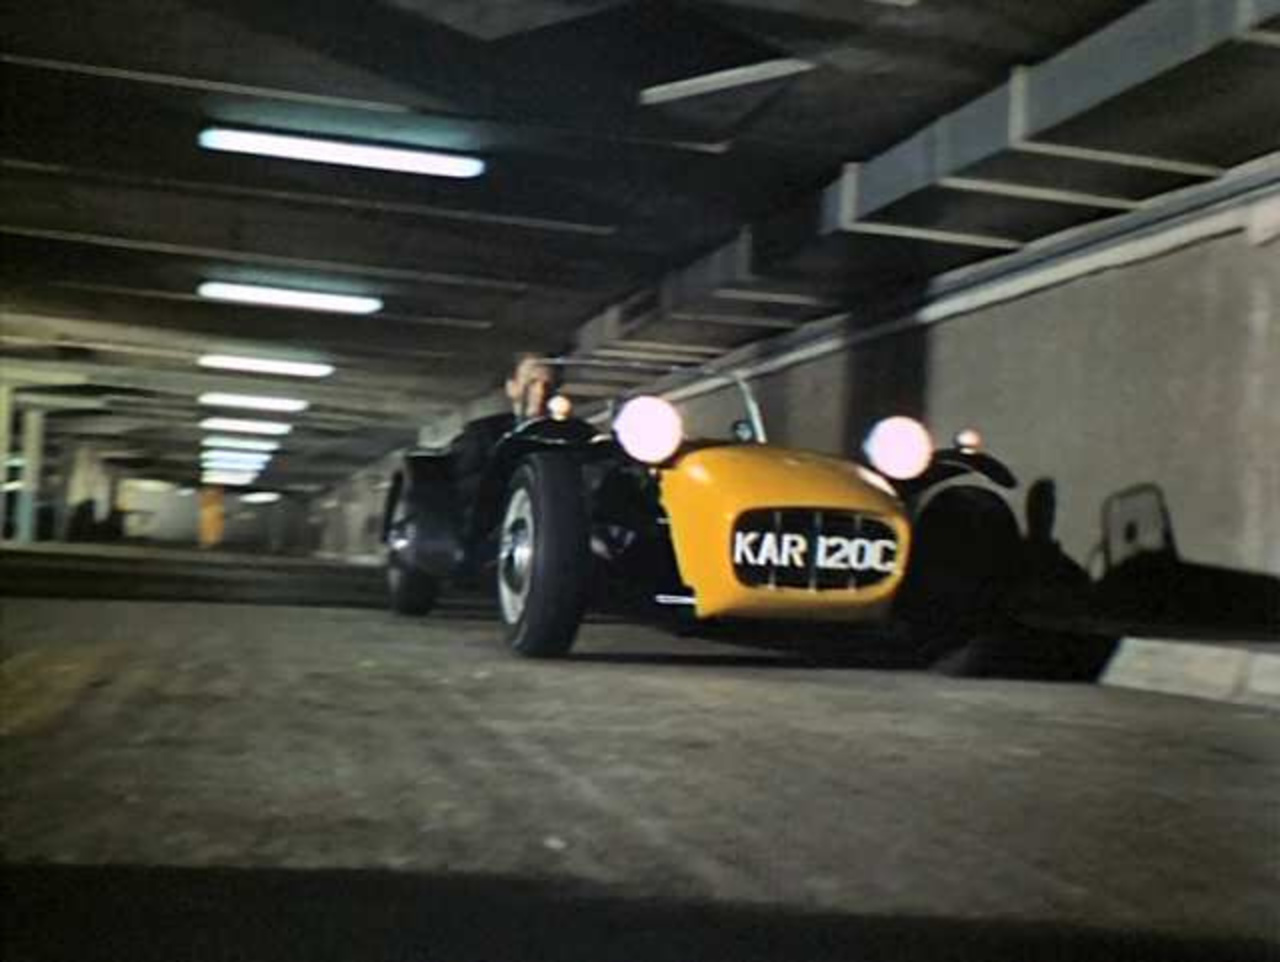 Lotus 7 S2 ´KAR 120C´ [The Prisoner, 1967] | Flickr - Photo Sharing!